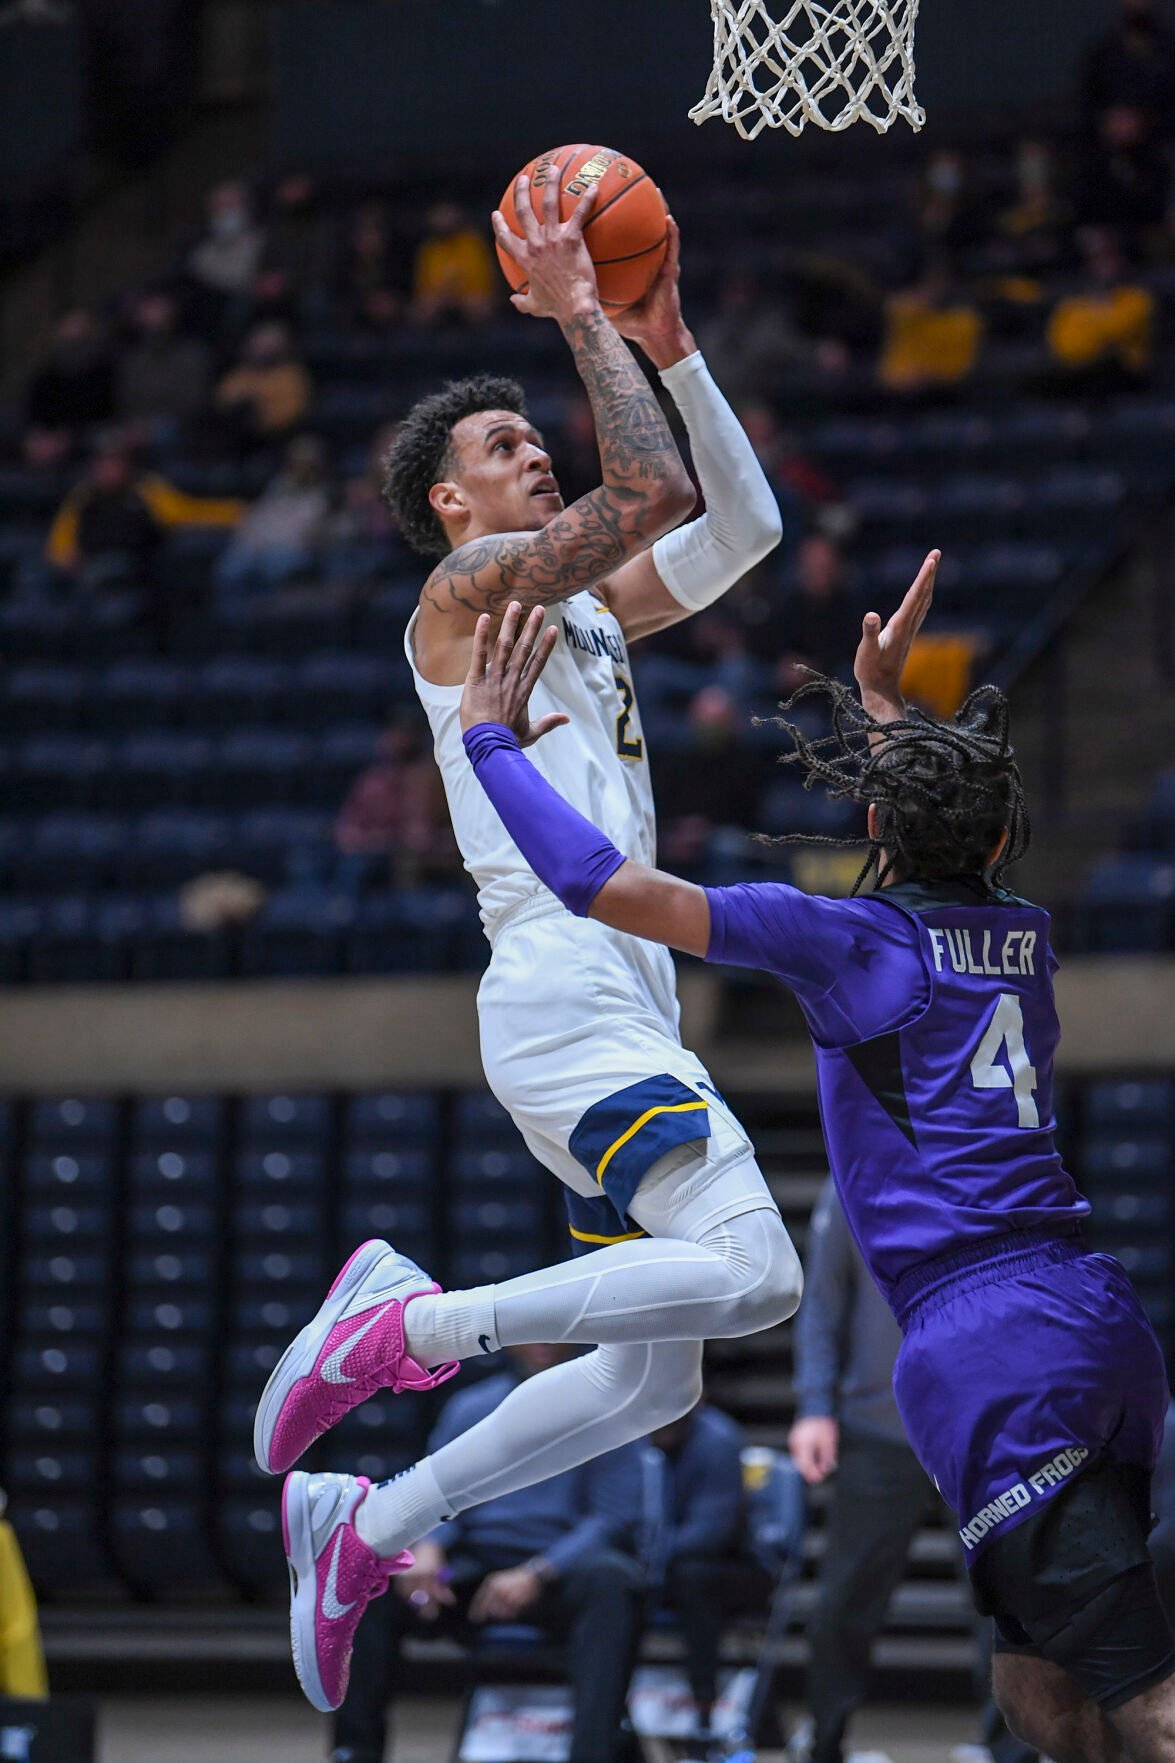 West Virginia forward Jalen Bridges soars to the rim against the TCU Horned Frogs at the WVU Coliseum on March 4, 2021.